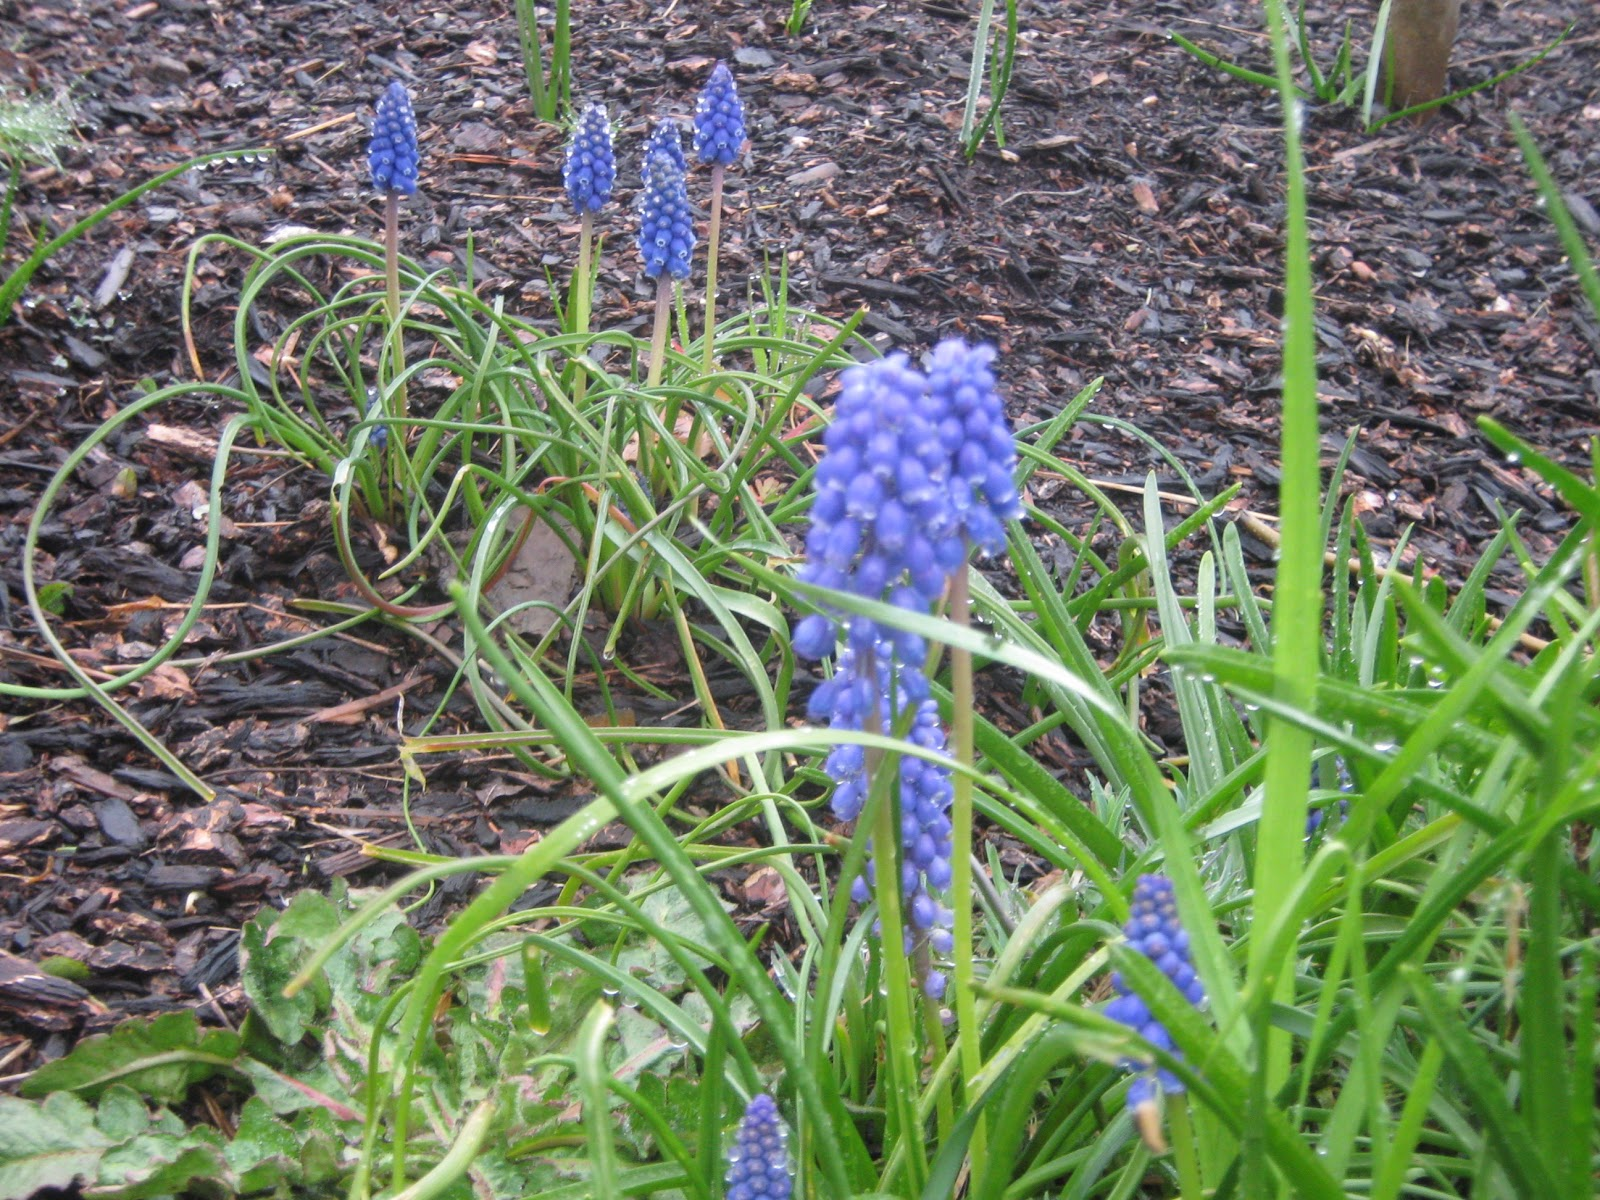 how to get rid of purple flower weeds